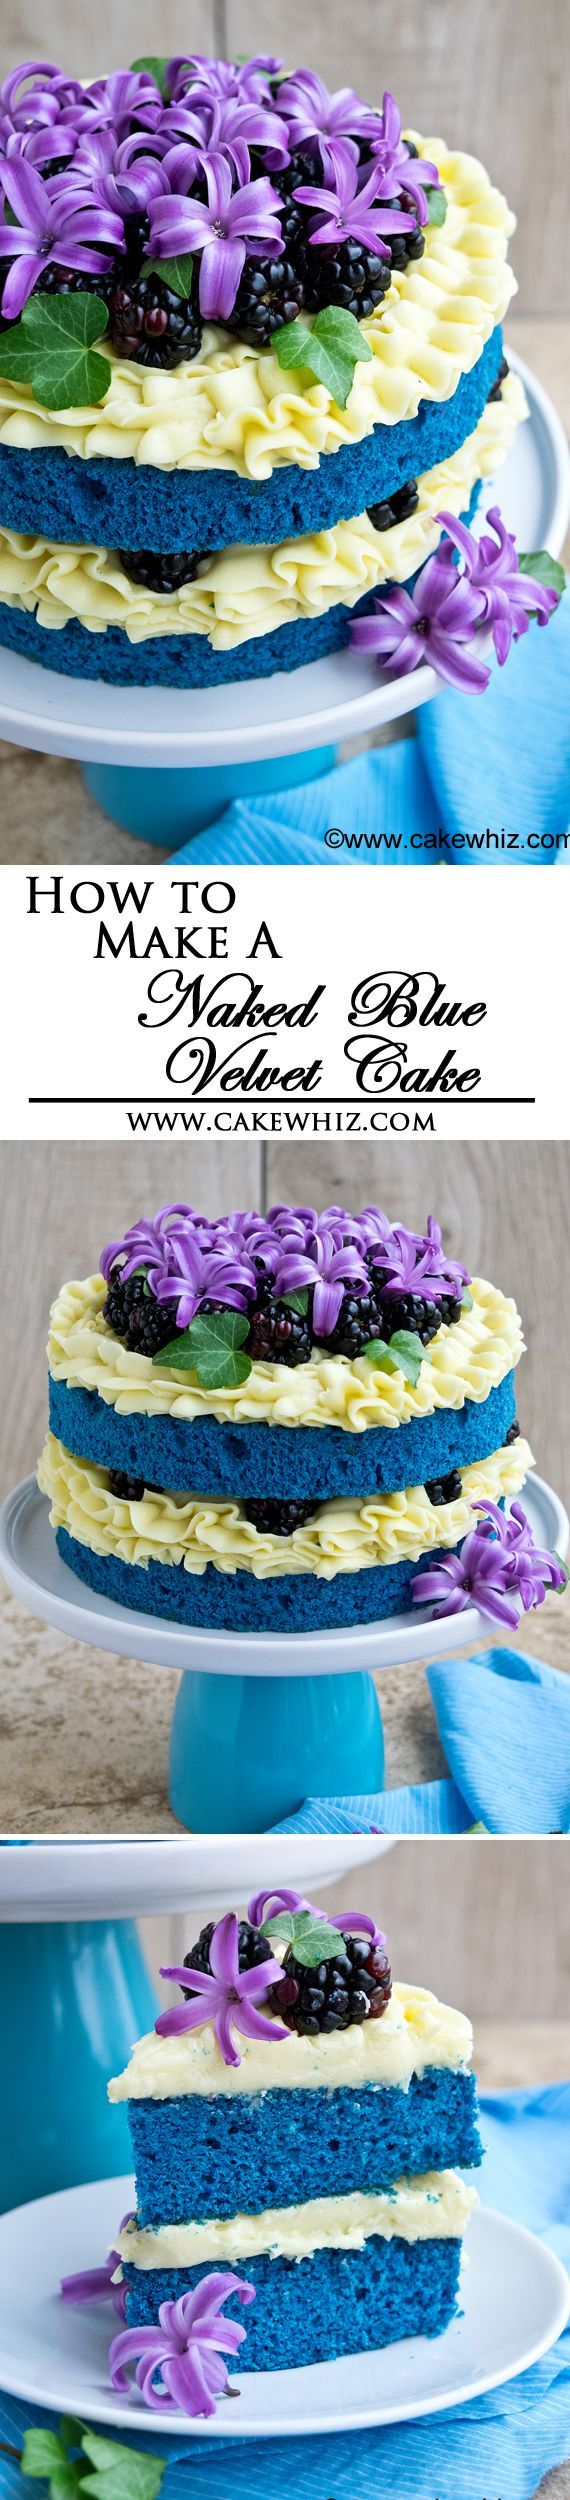 Learn how to make a NAKED BLUE VELVET CAKE with step-by-step instructions.